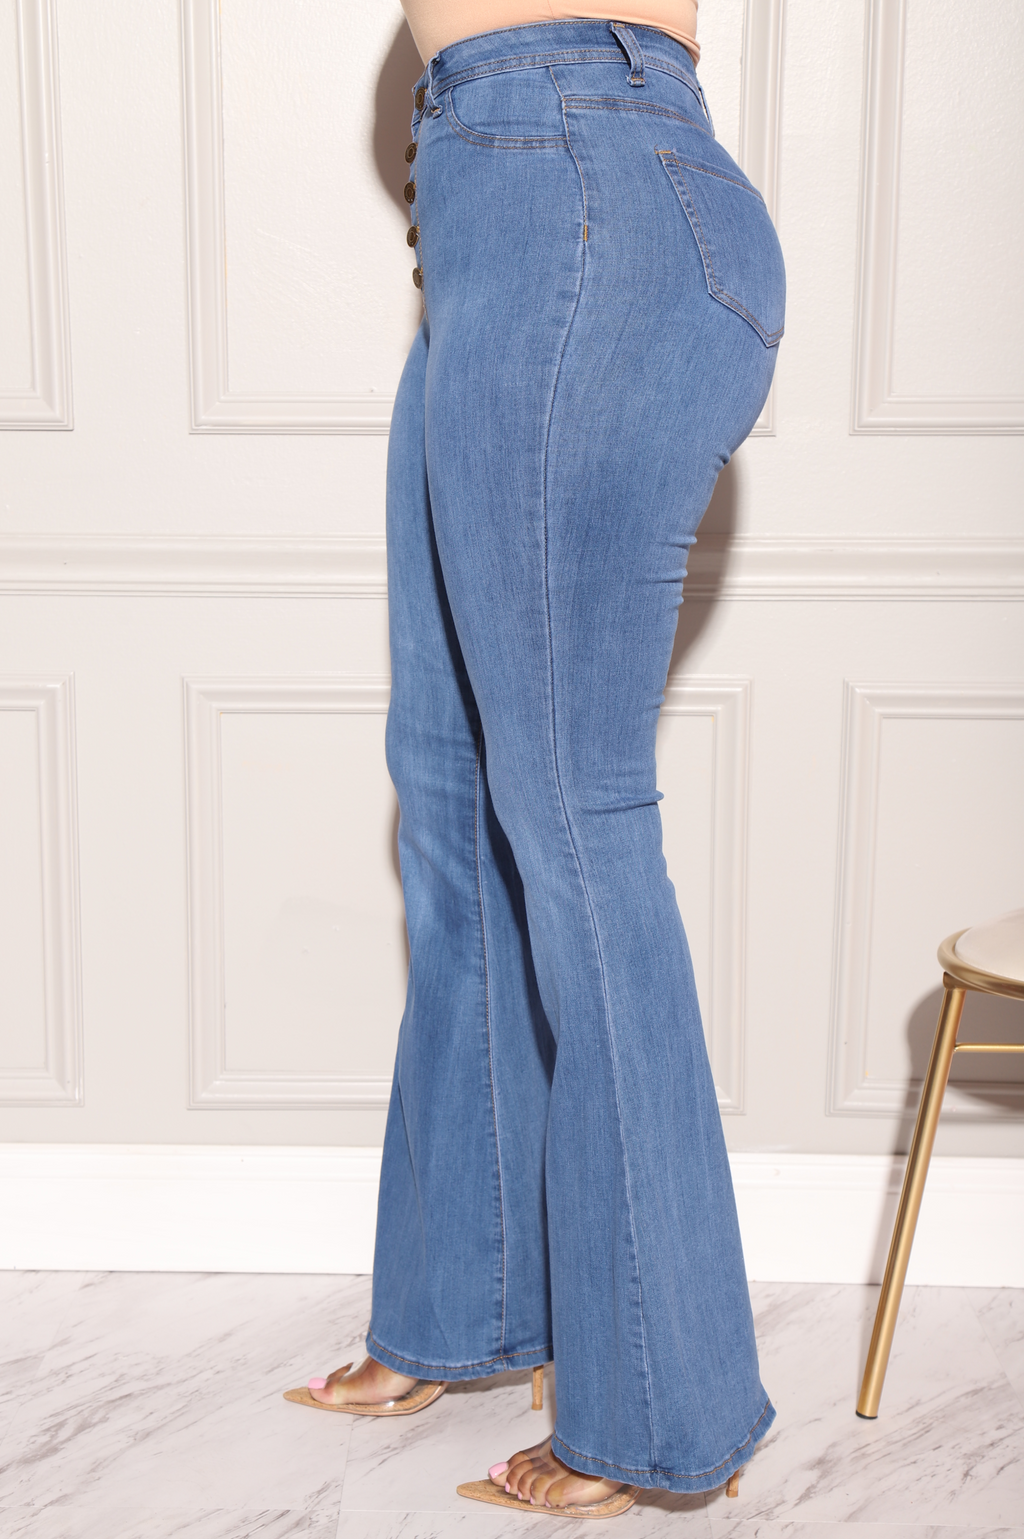 Dina High Waist Stretchy Bell Bottom Jeans - Mid Wash - Swank A Posh